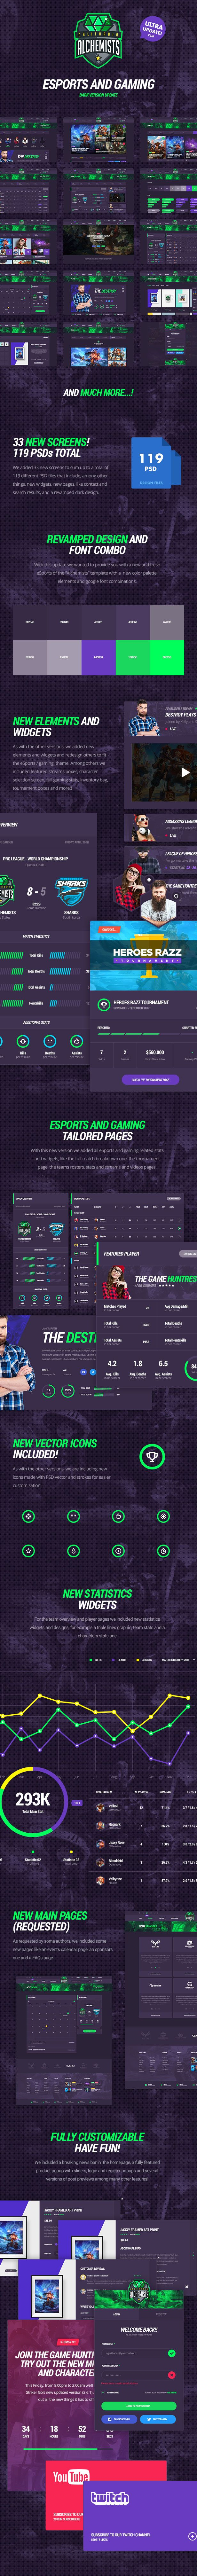 The Alchemists - Sports News PSD Template V4.0 + eSports & Gaming - 10